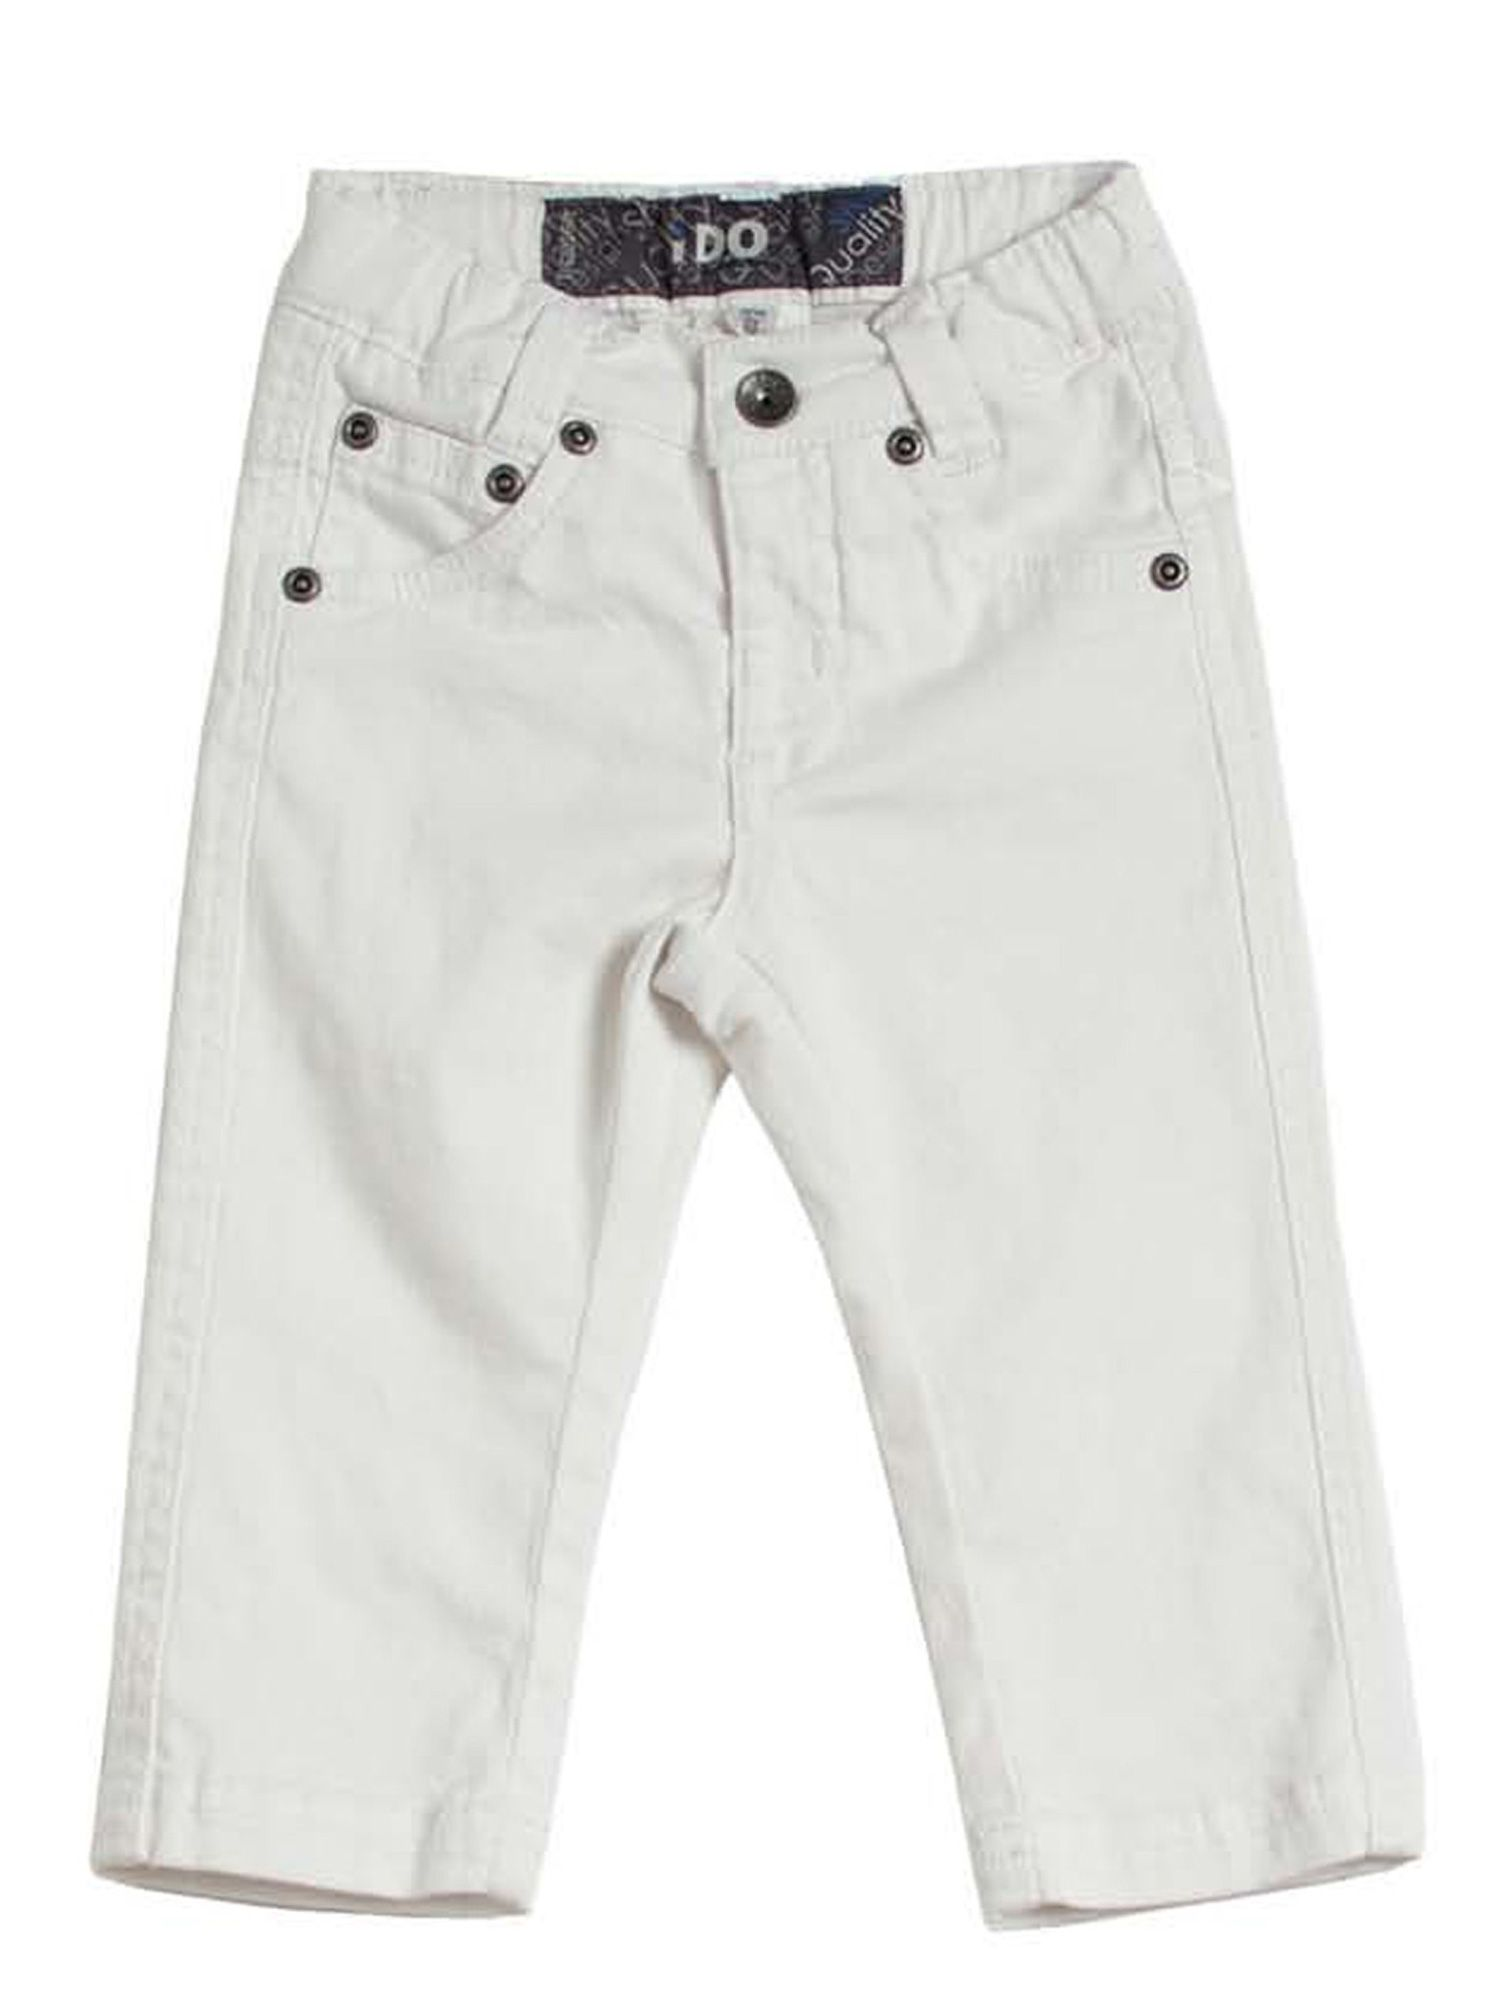 Boys stretchy 5 pocket trouser